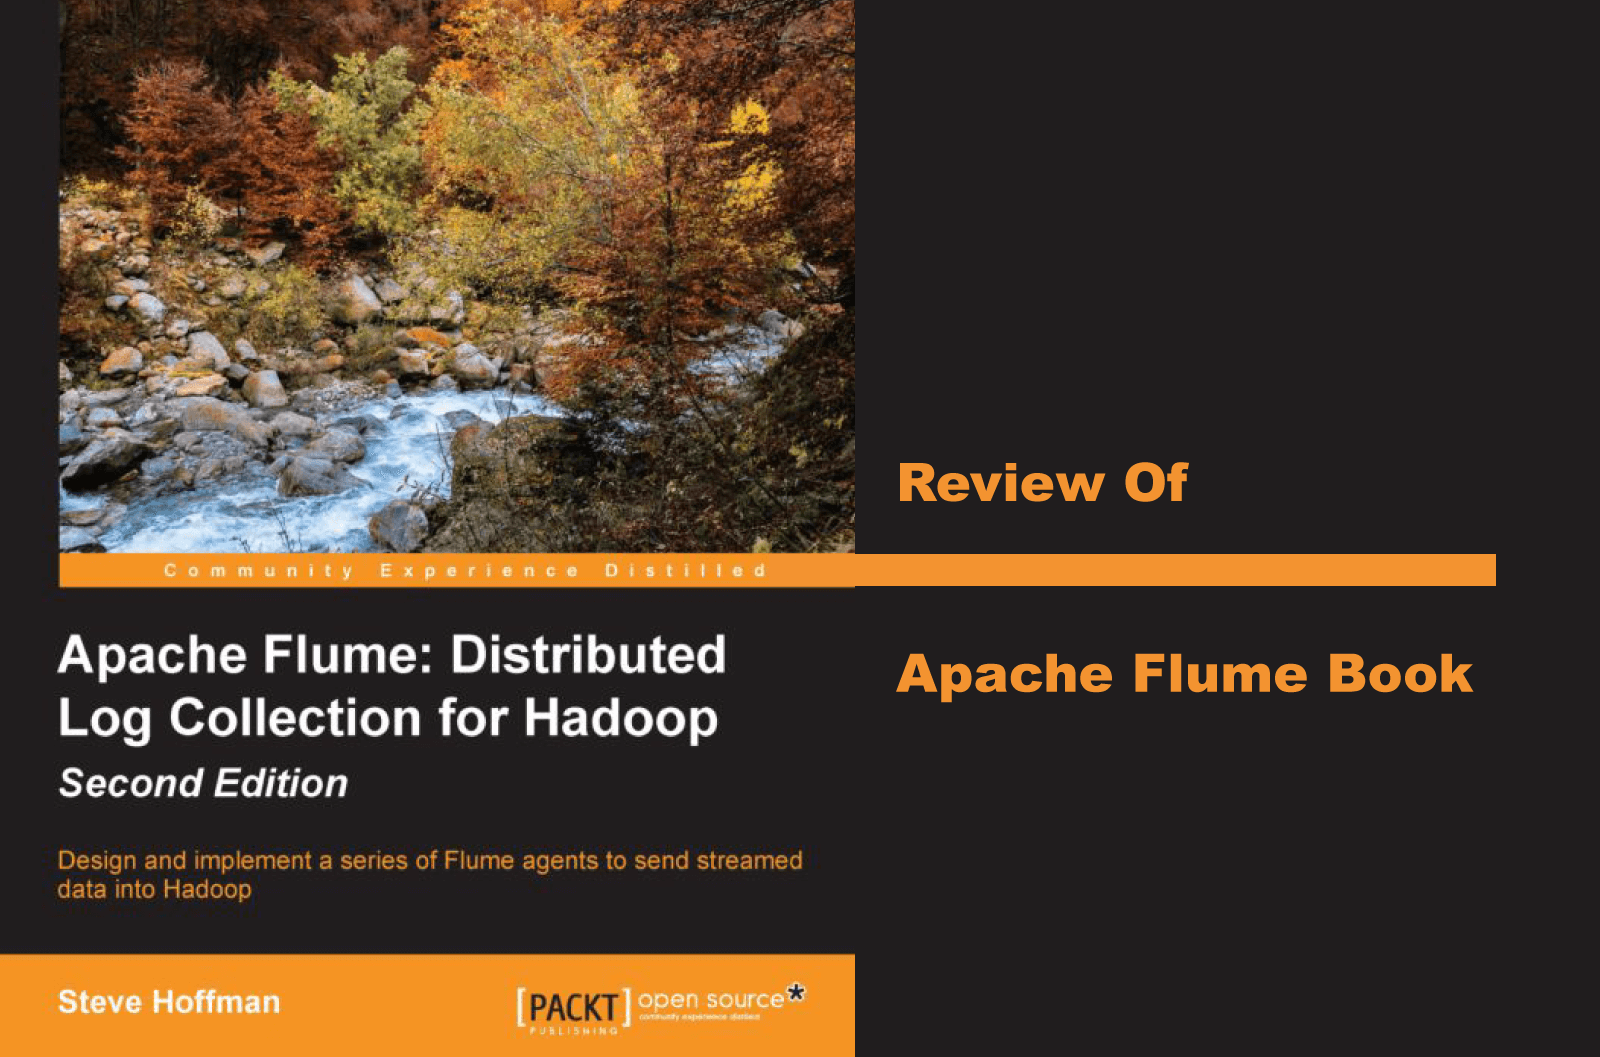 Review of Apache Flume book (Packt), second edition